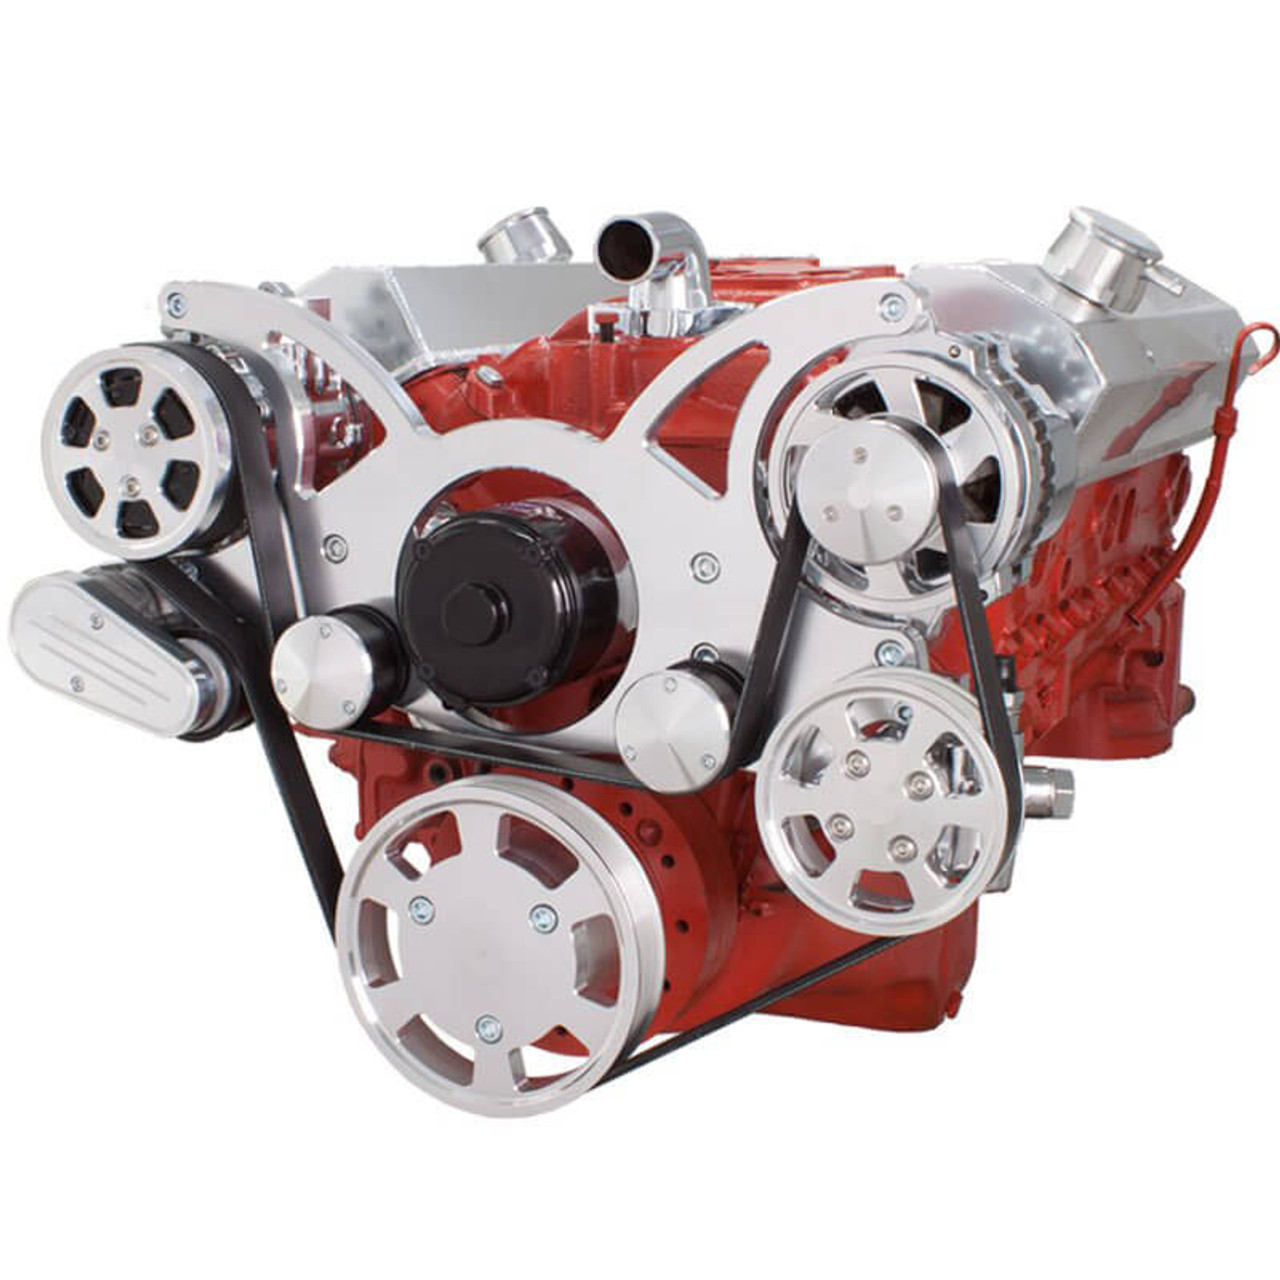 Serpentine System for SBC 283-350-400 - AC, Power Steering & Alternator  with Electric Water Pump - All Inclusive